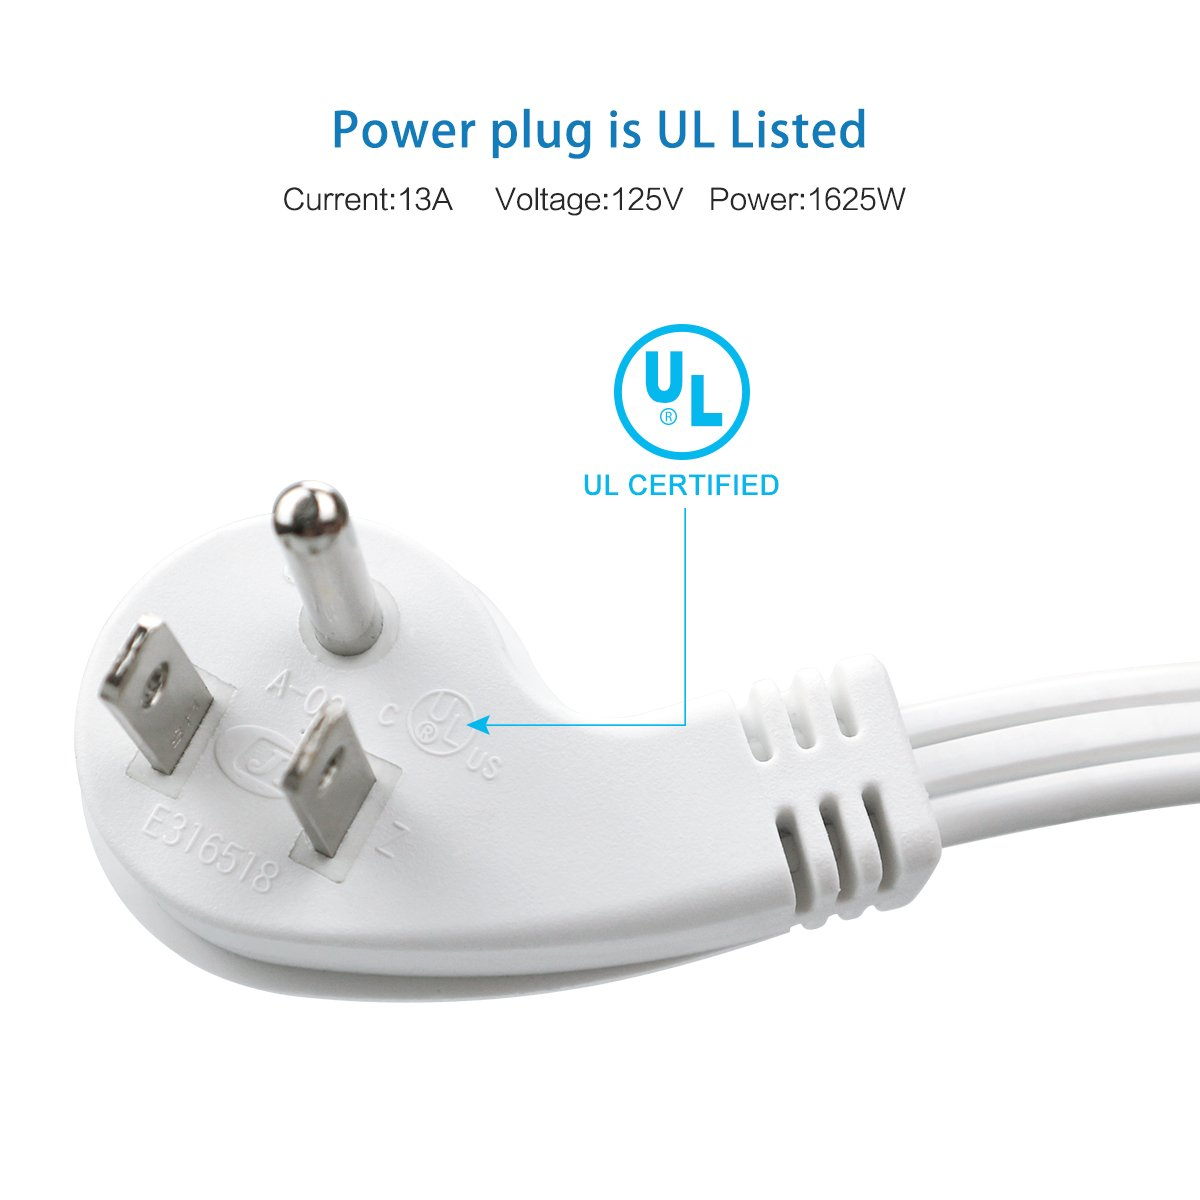 ClearMax 15 Feet 3 Prong Power Flat Extension Cord with Angled Plug - Cable Strip Outlet Saver - 16AWG - 15' - (2 Pack | White) by ClearMax (Image #3)